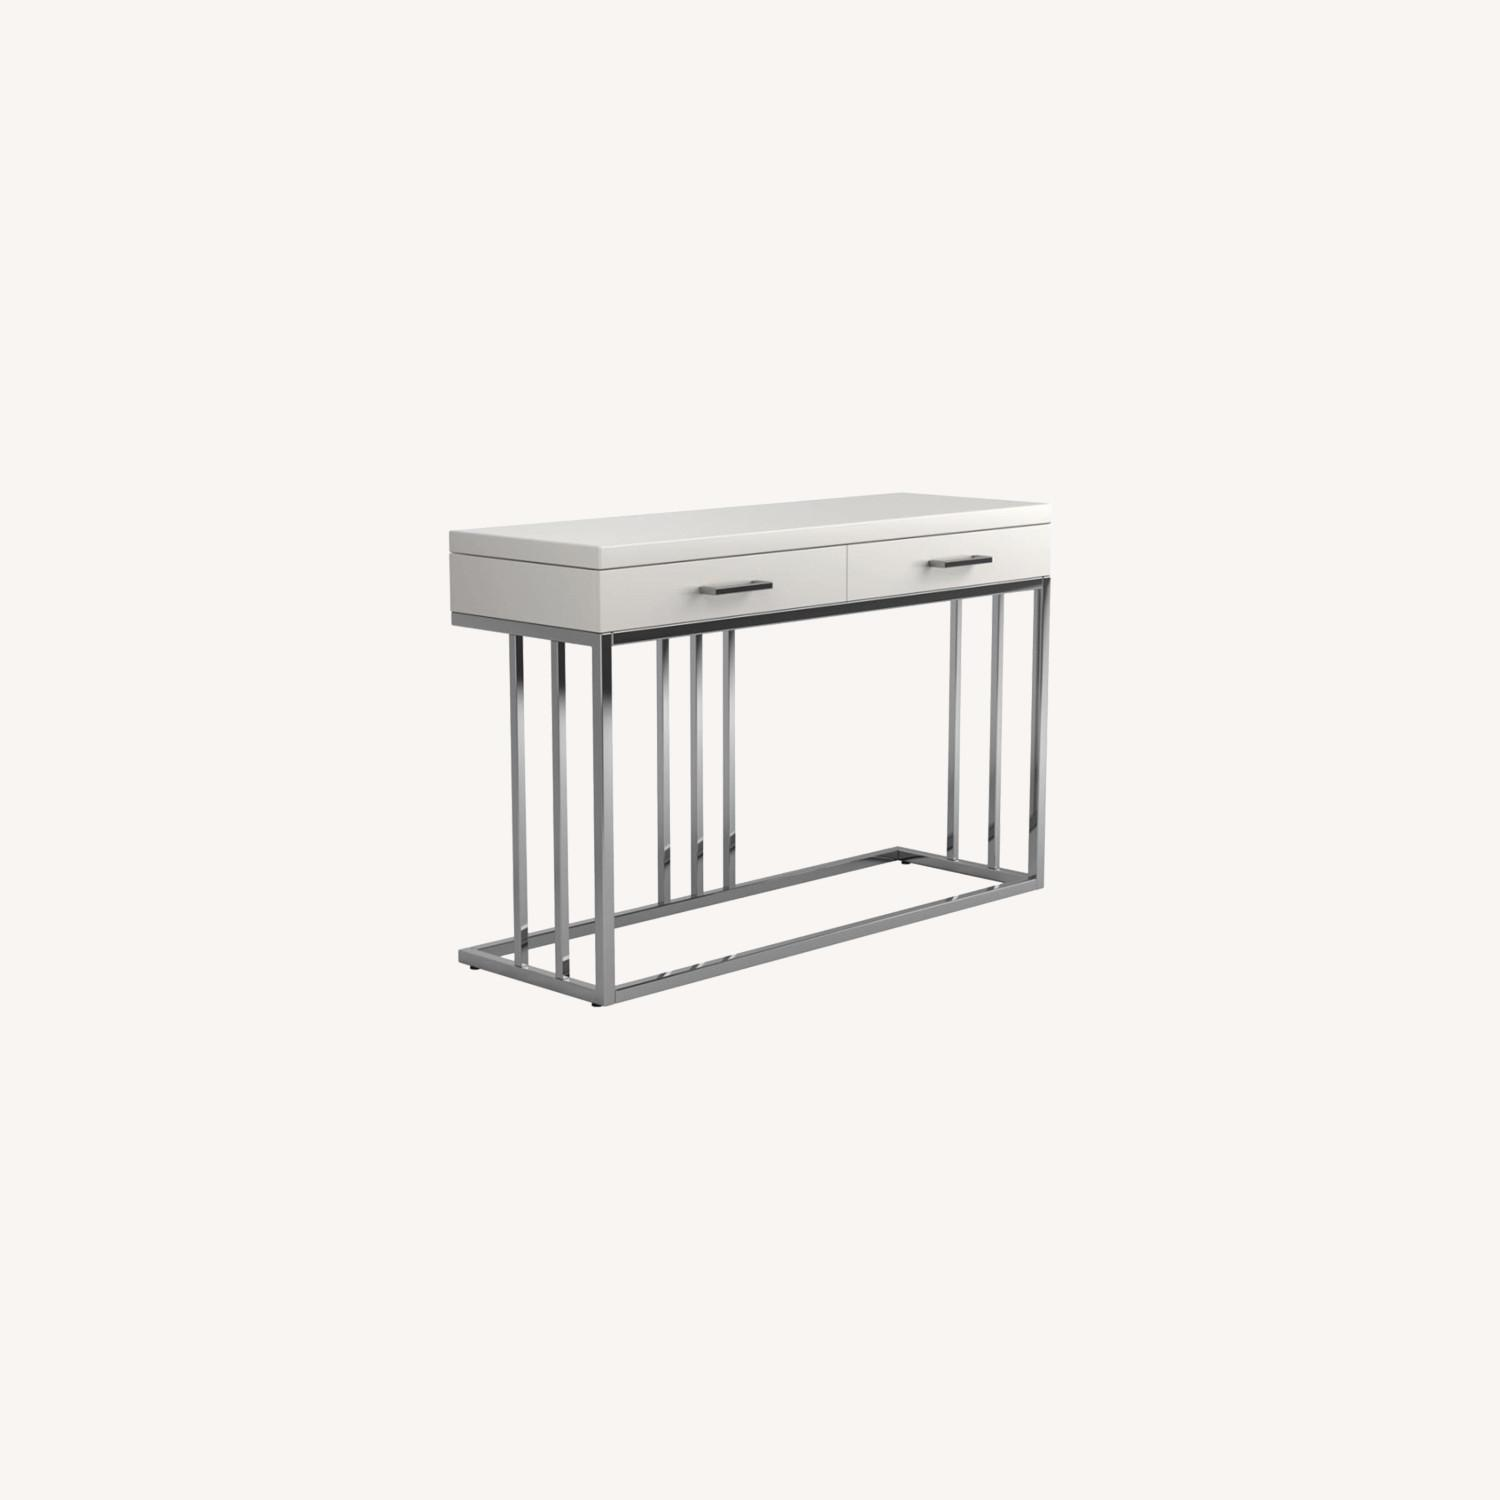 Sofa Table In Modern Linear Design - image-6